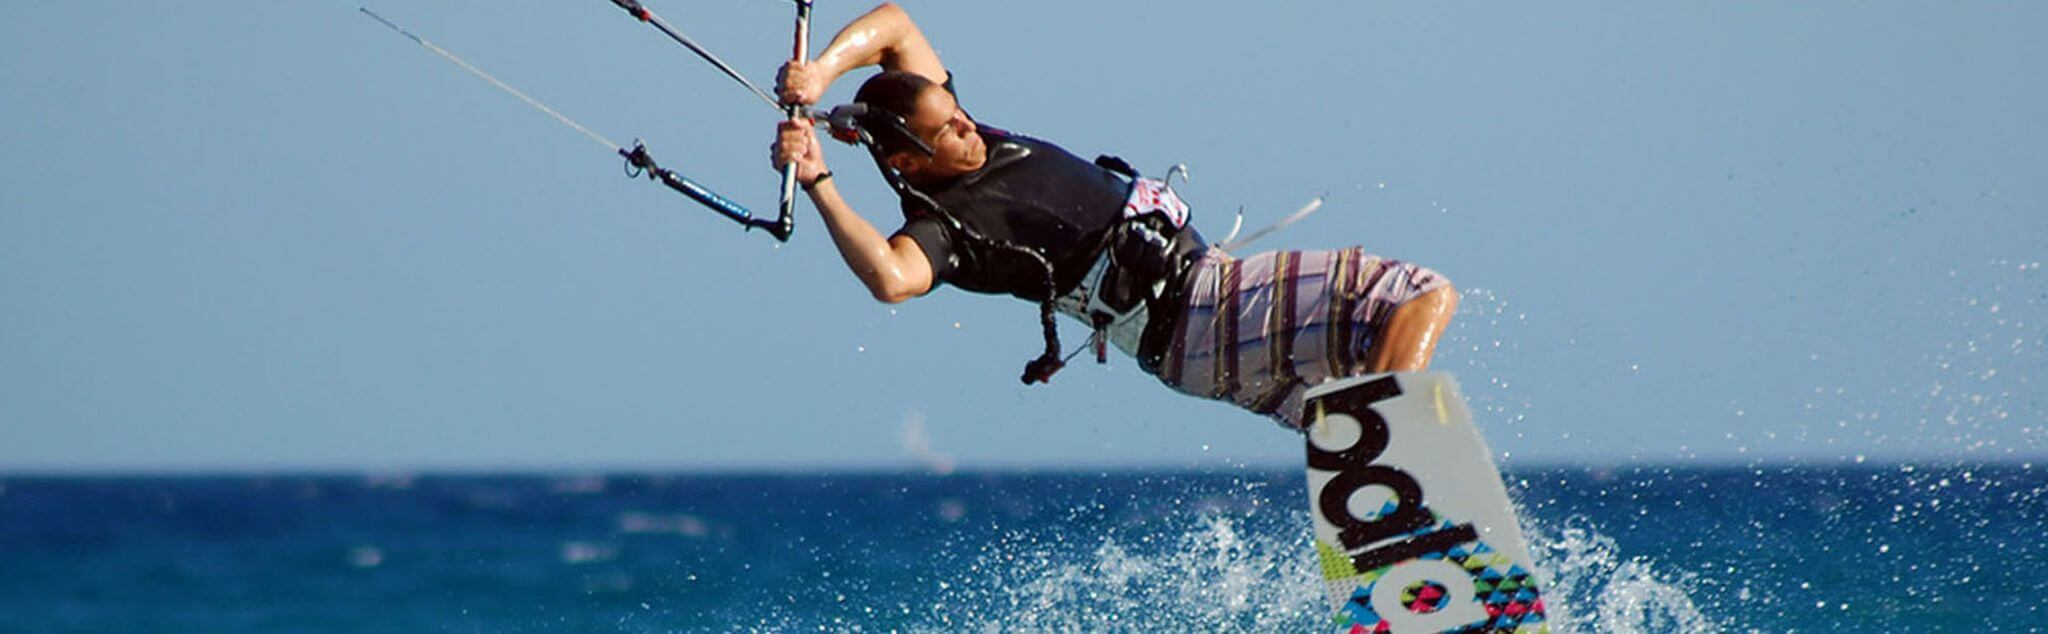 Kitesurfing in Alicante